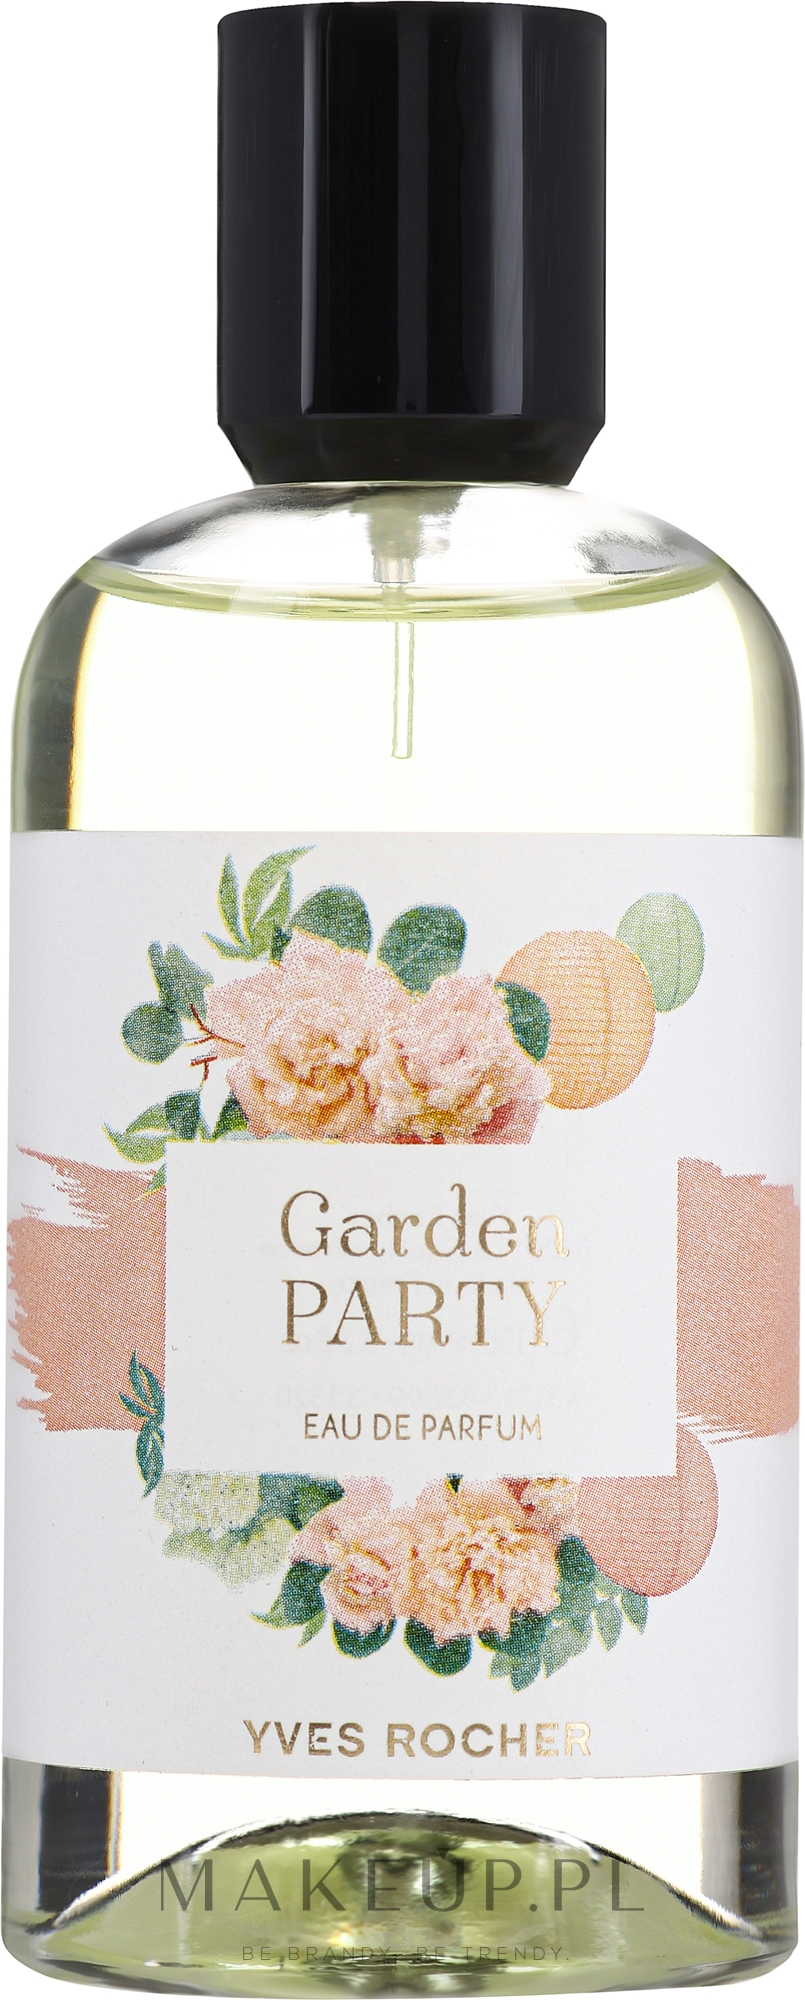 yves rocher garden party